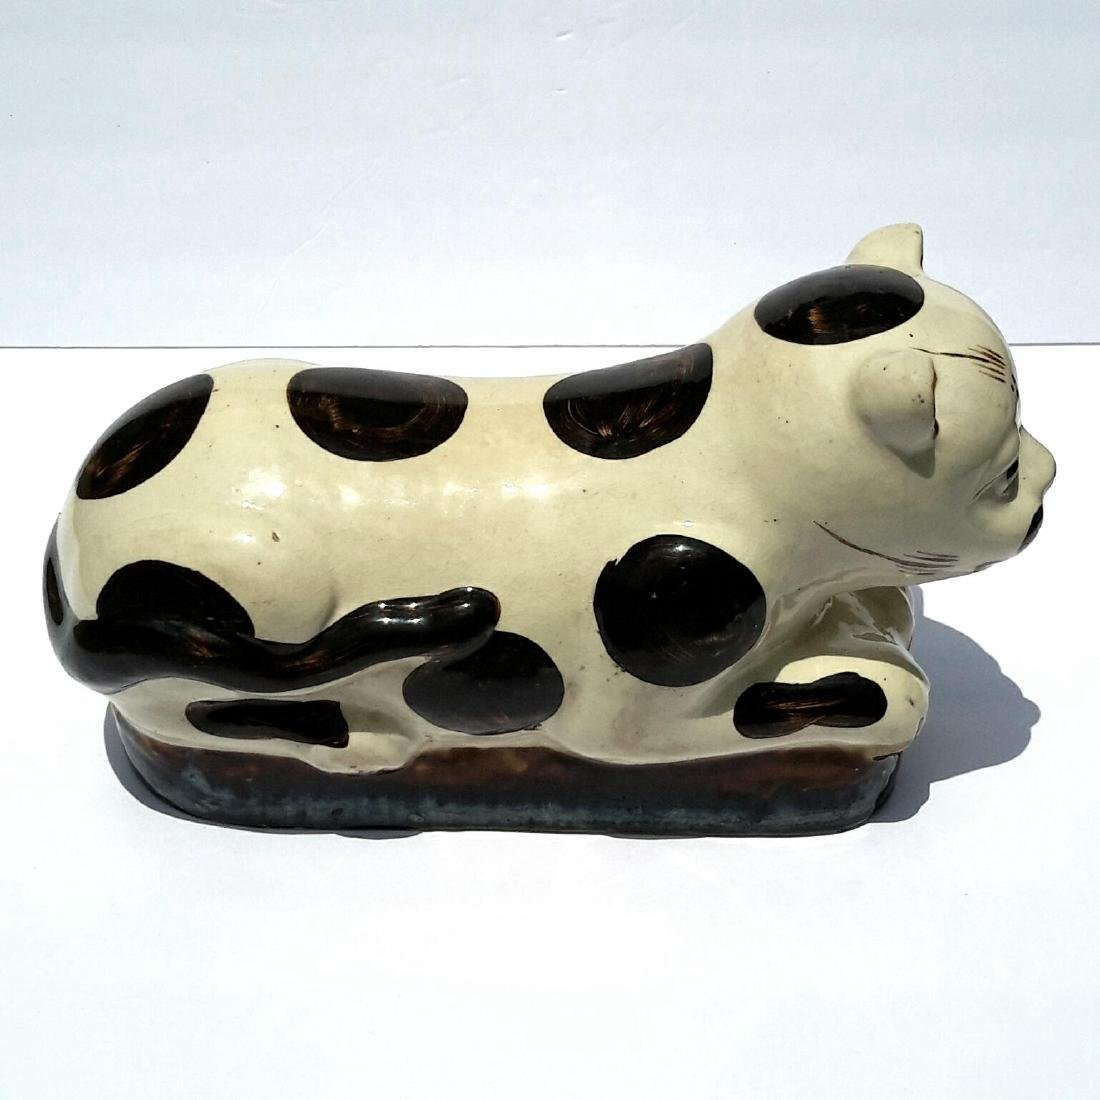 19th Century Chinese Porcelain Cat Form Pillow - 2